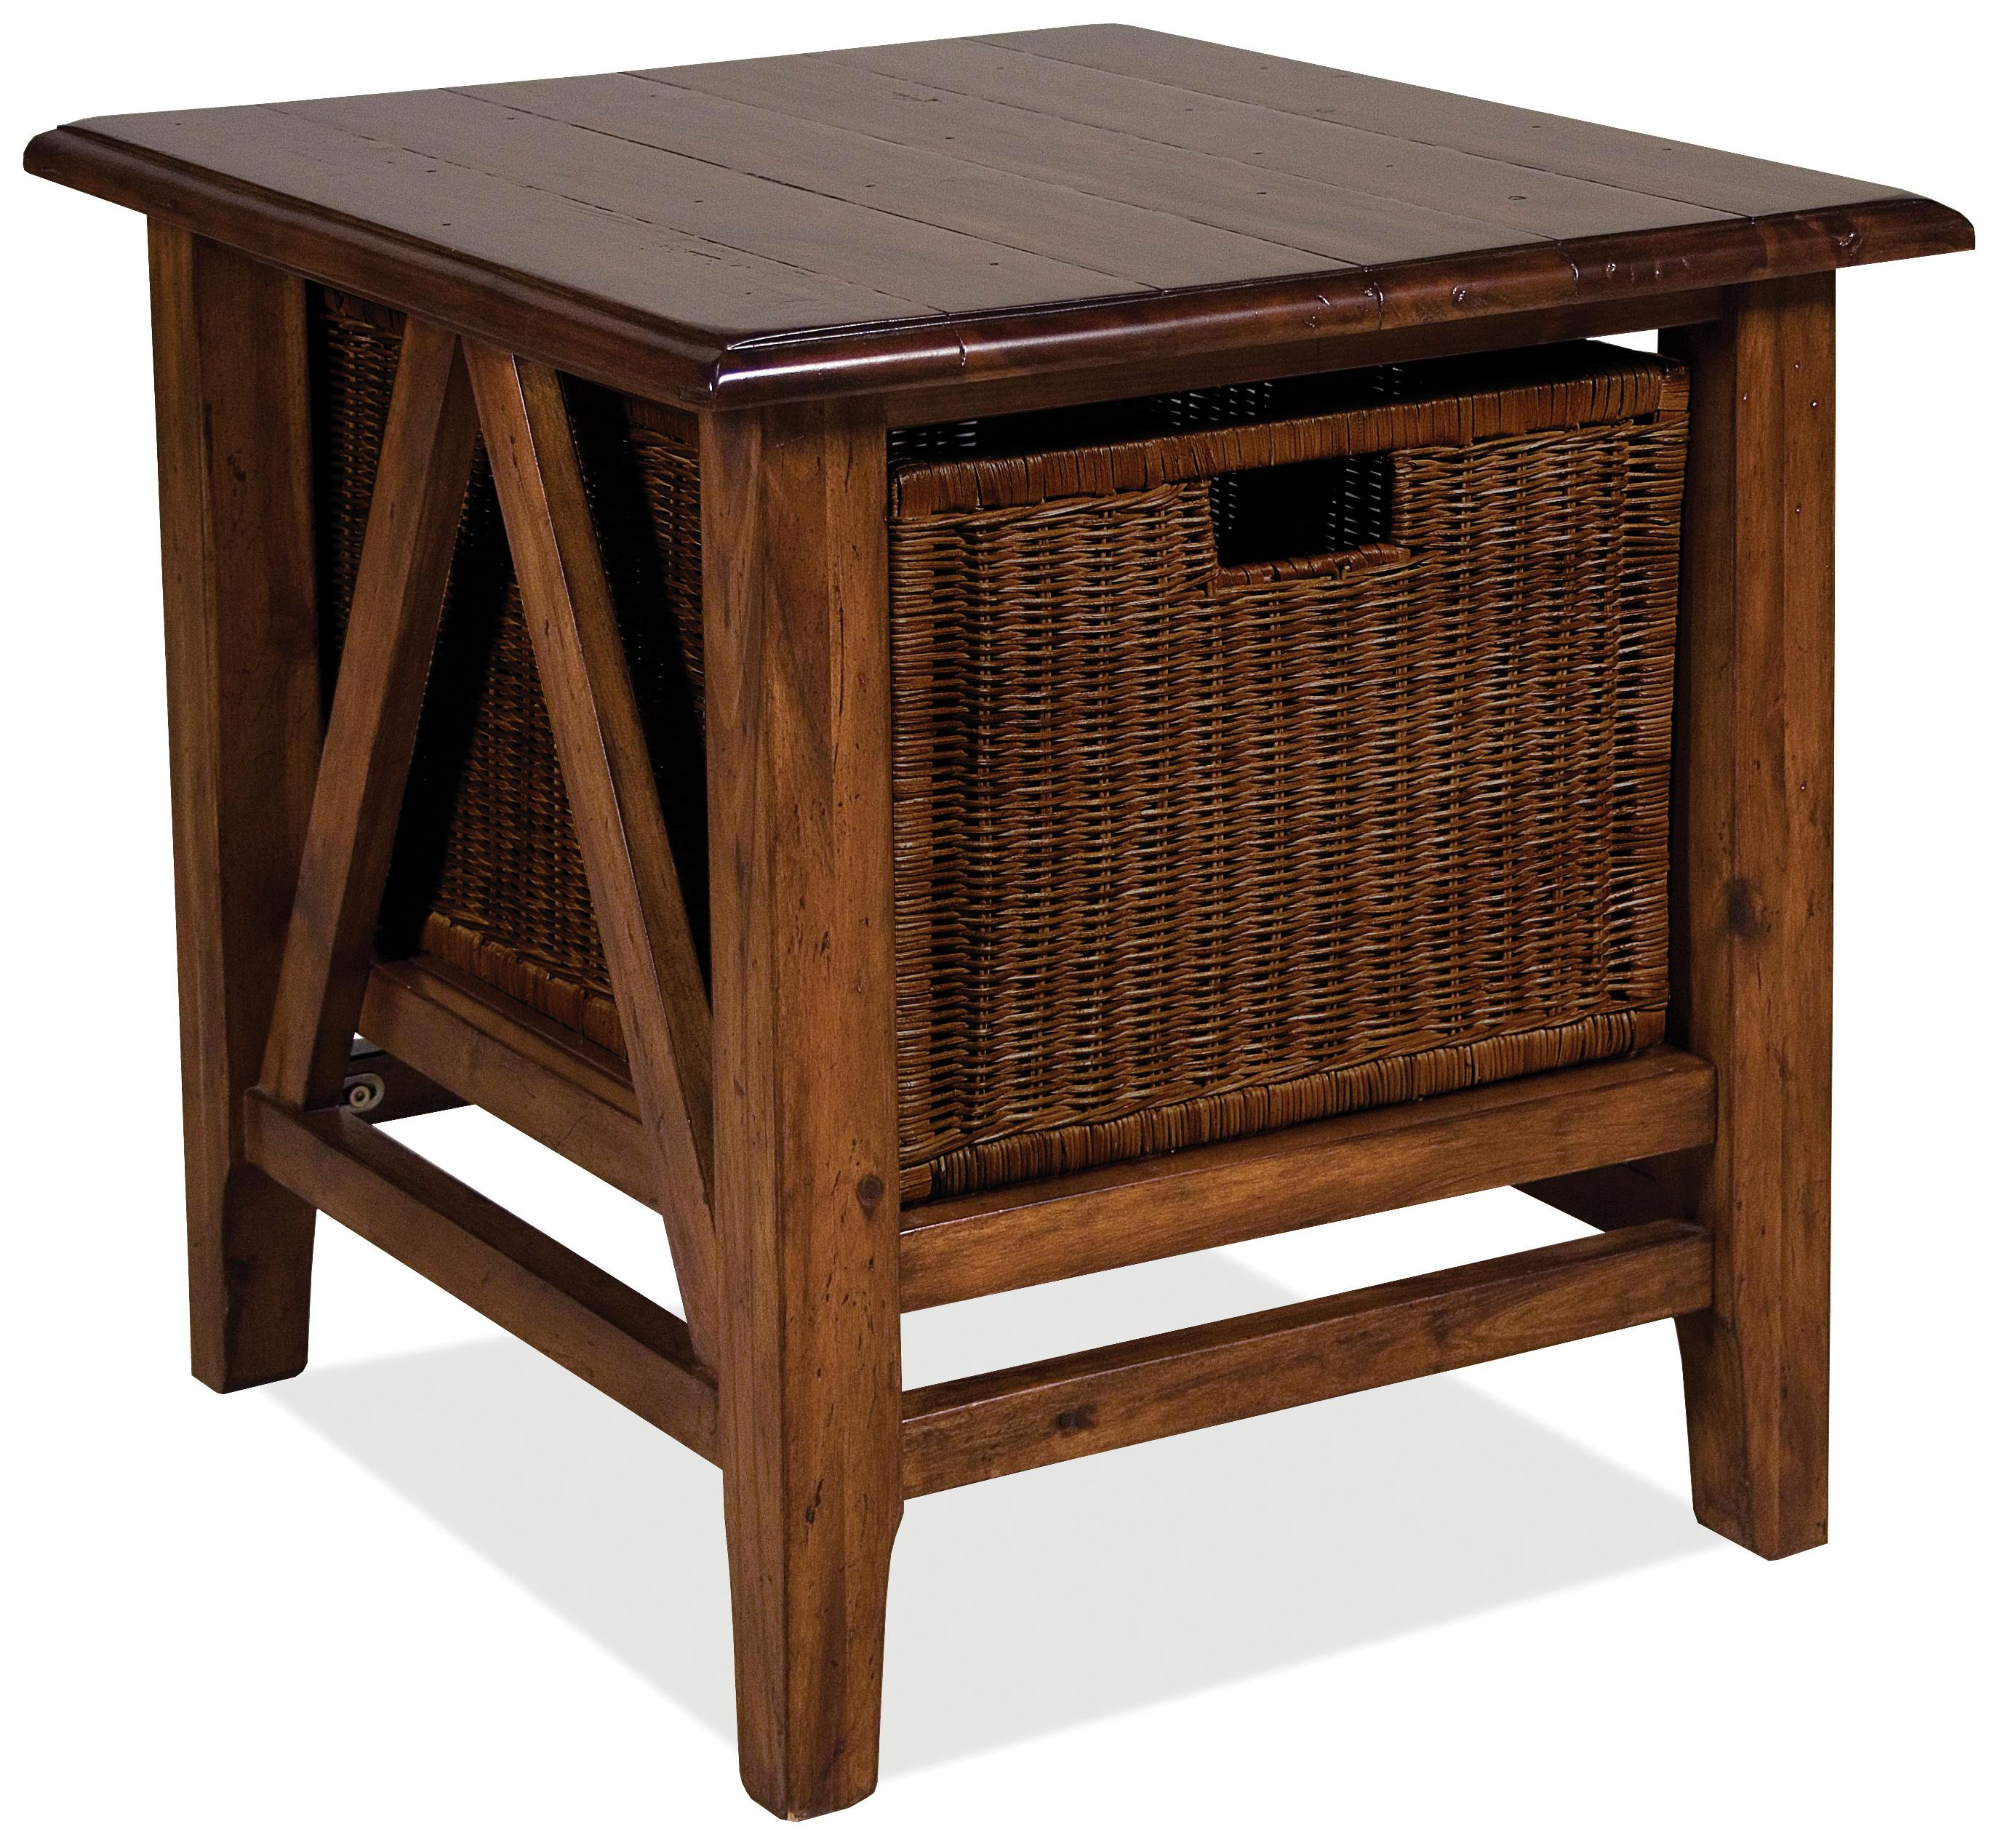 Rectangular End Table With Storage Basket By Riverside